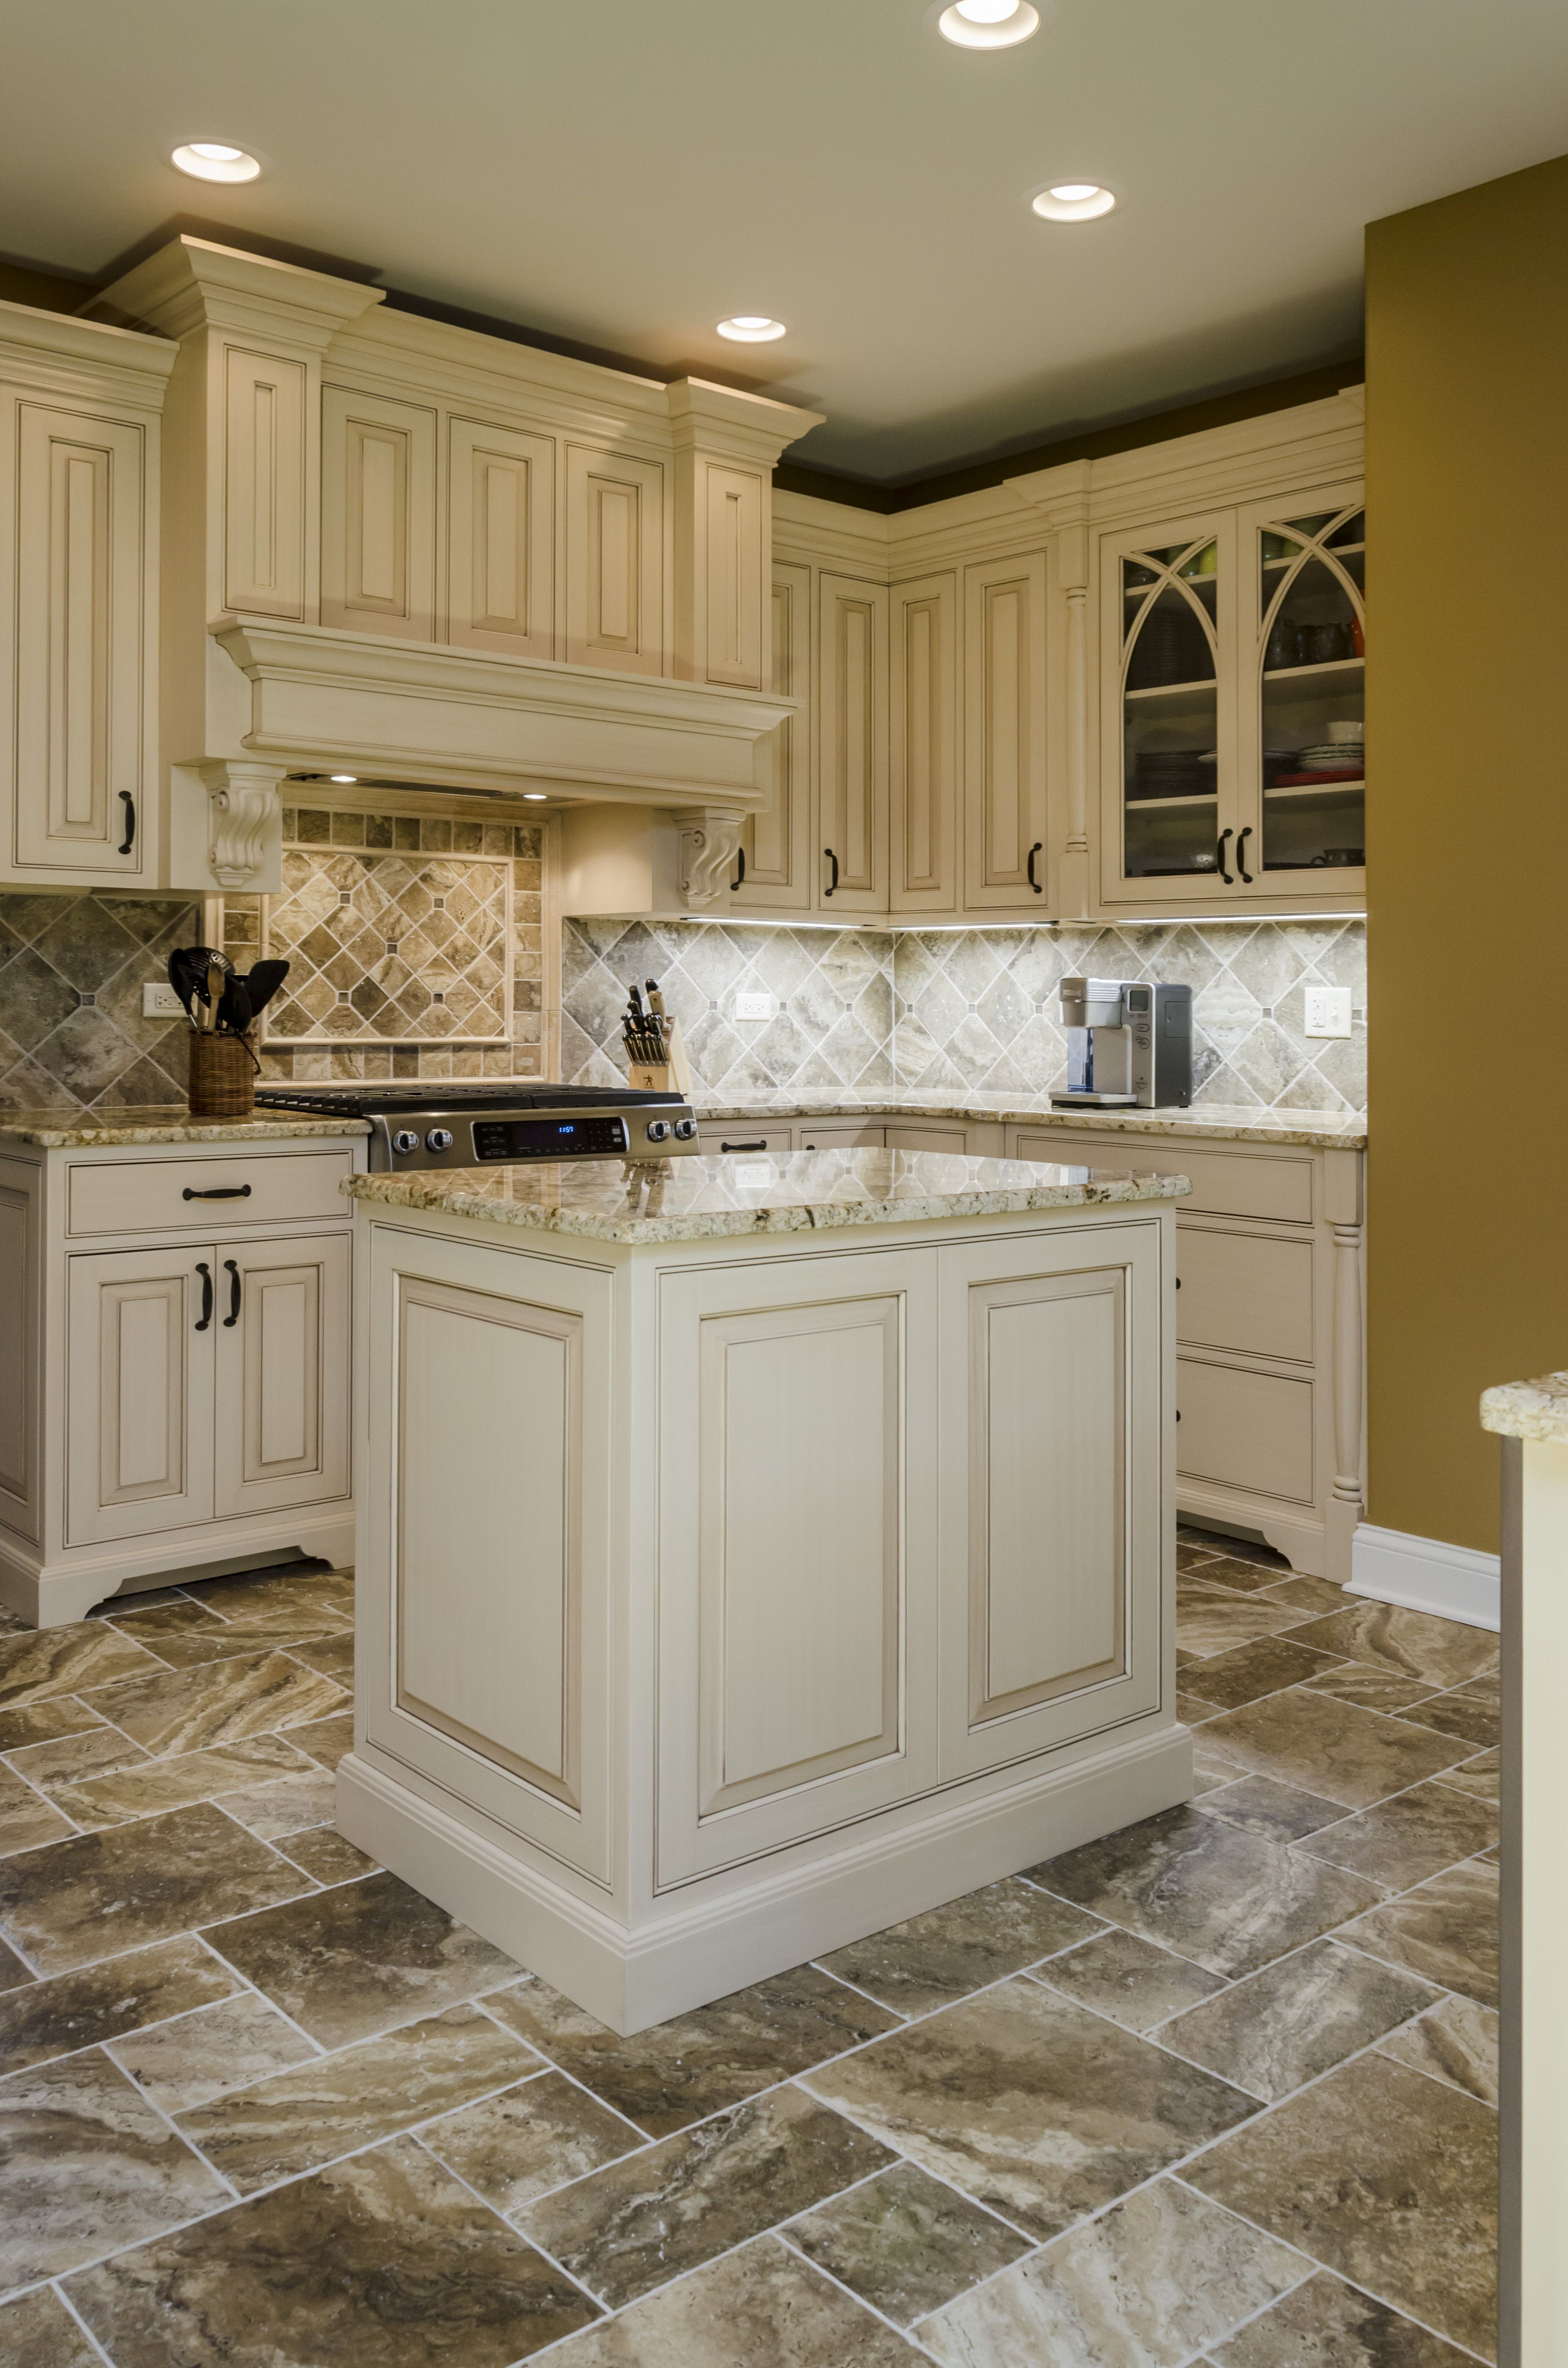 Traditional style kitchen featuring fully custom cabinets Details